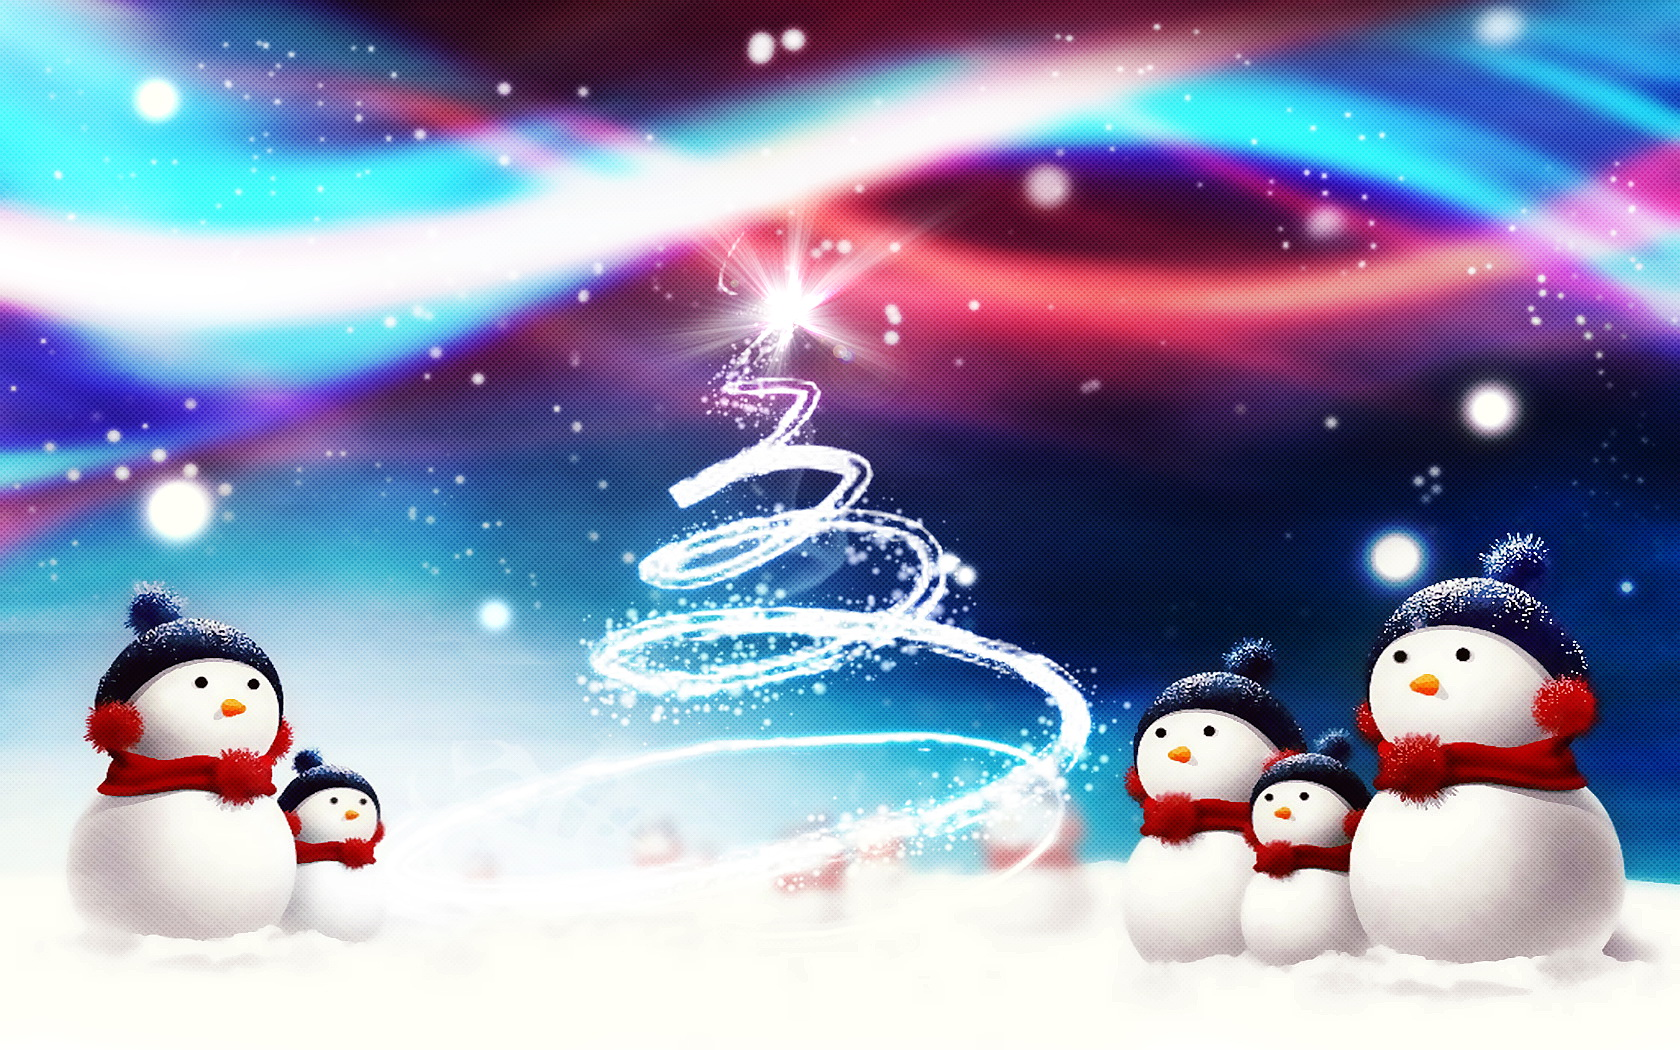 Bnest Widescreen Christmas Wallpaper